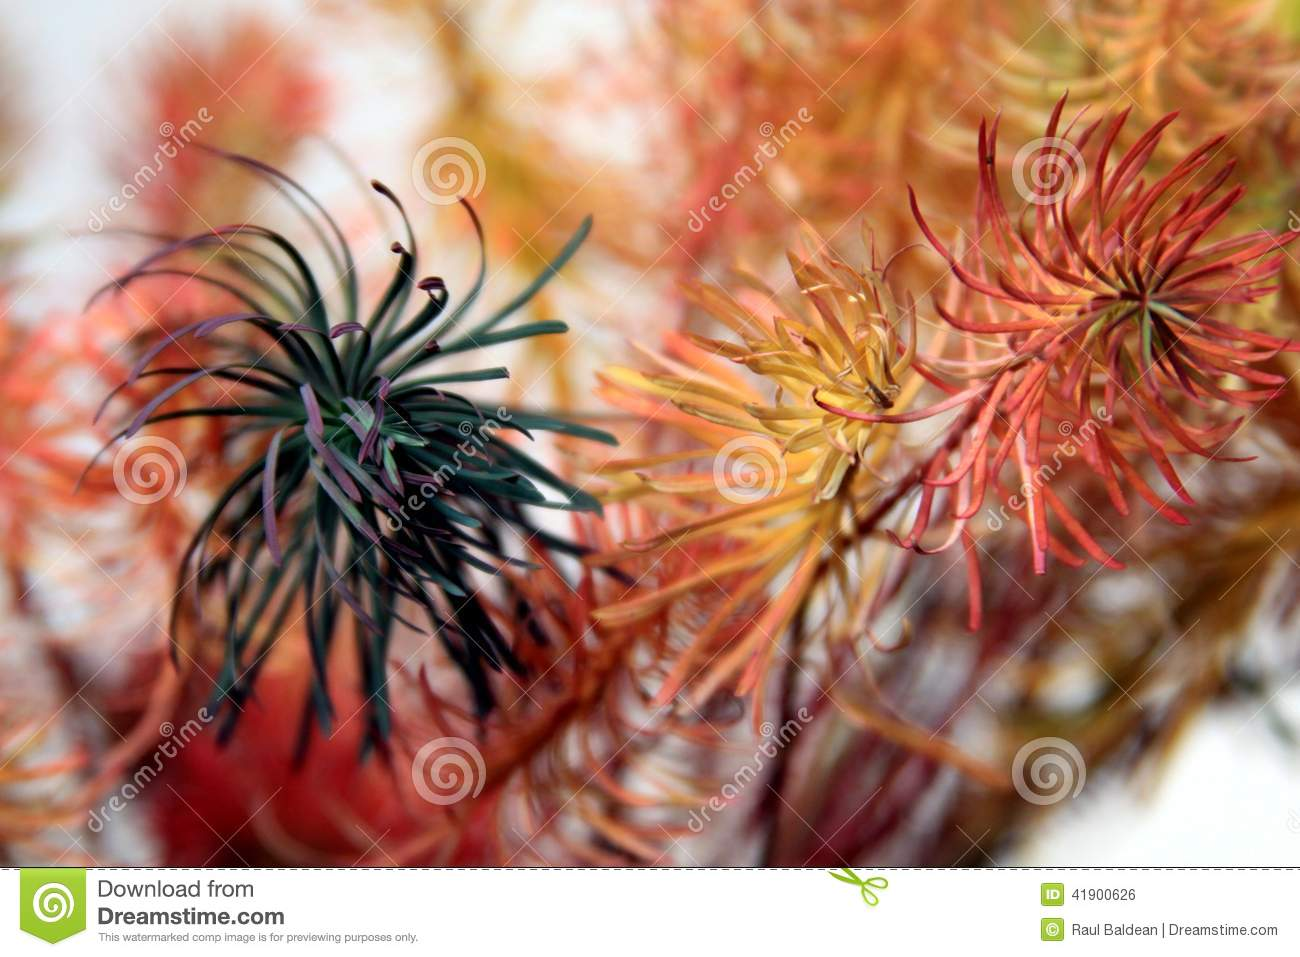 Colored plants on white background 01